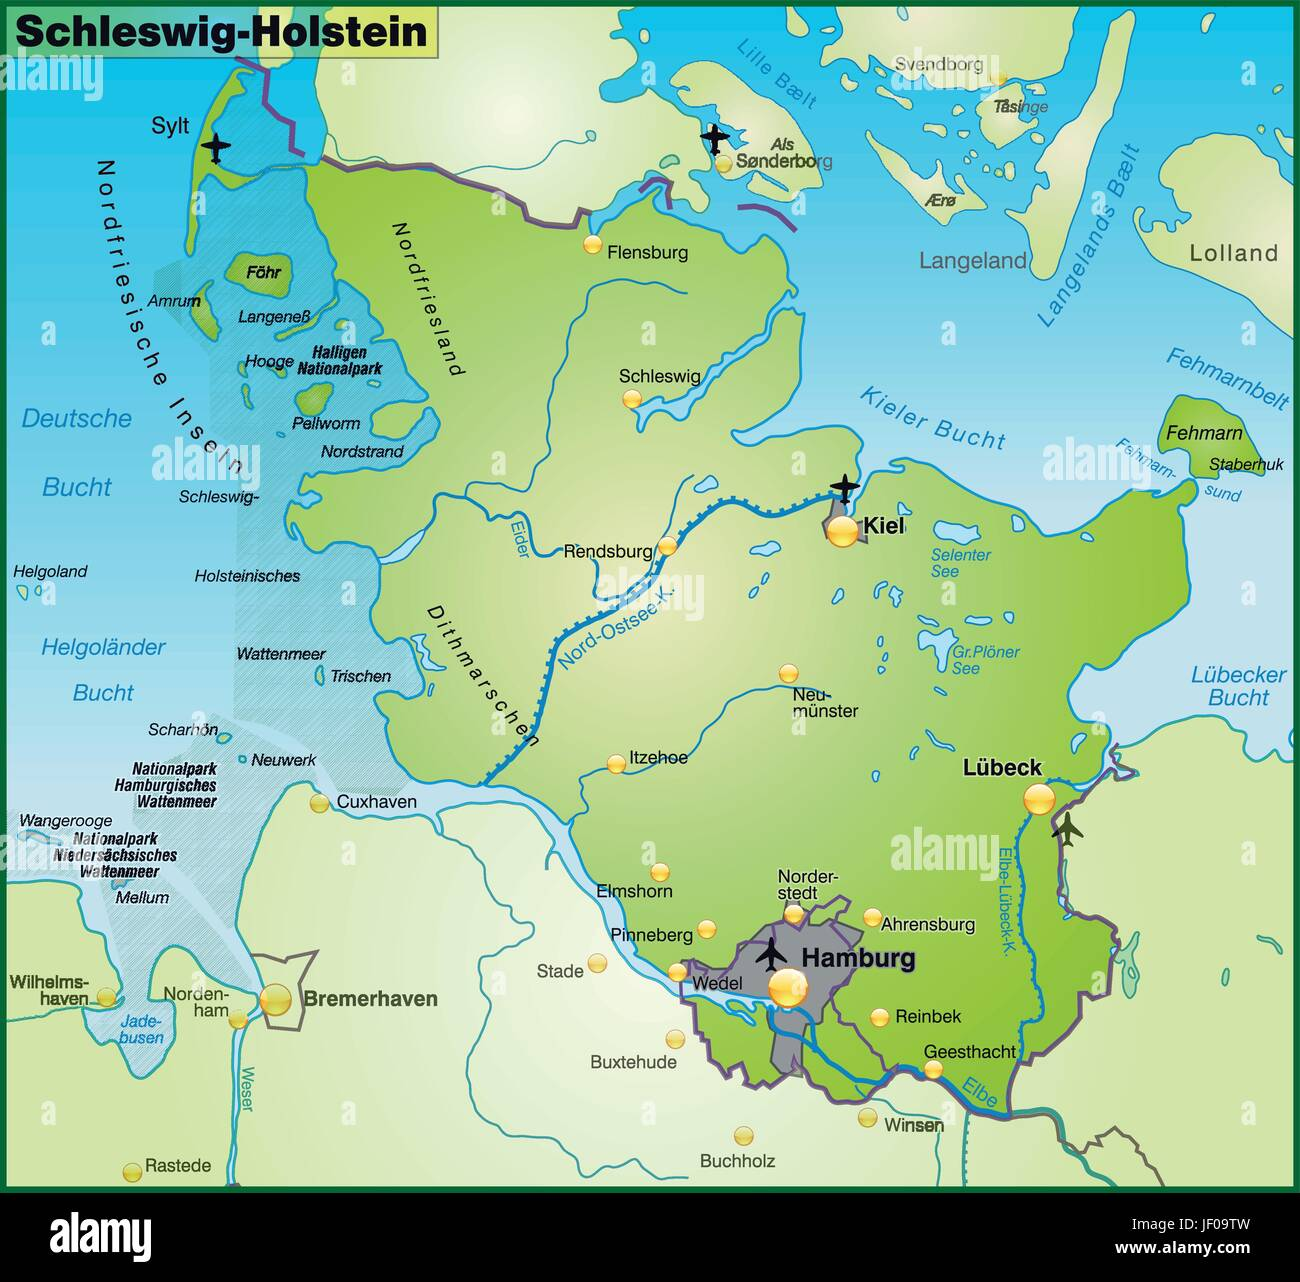 Map Of Schleswig Holstein As An Overview Map In Green Stock Vector